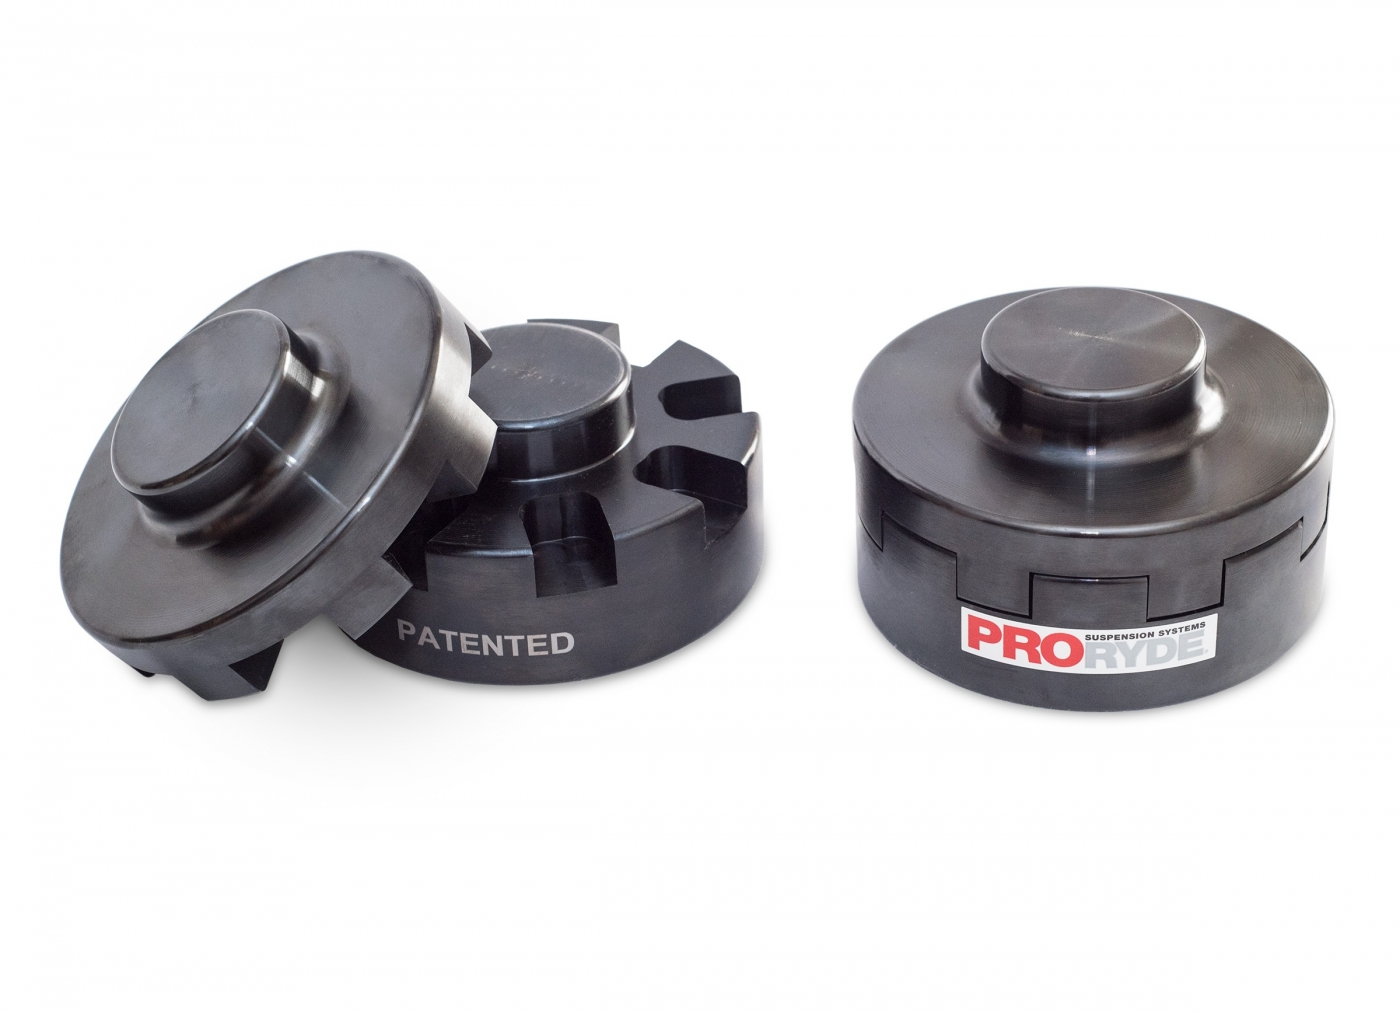 SuperBLOK 3-IN-1 REAR COIL SPRING BLOCKS